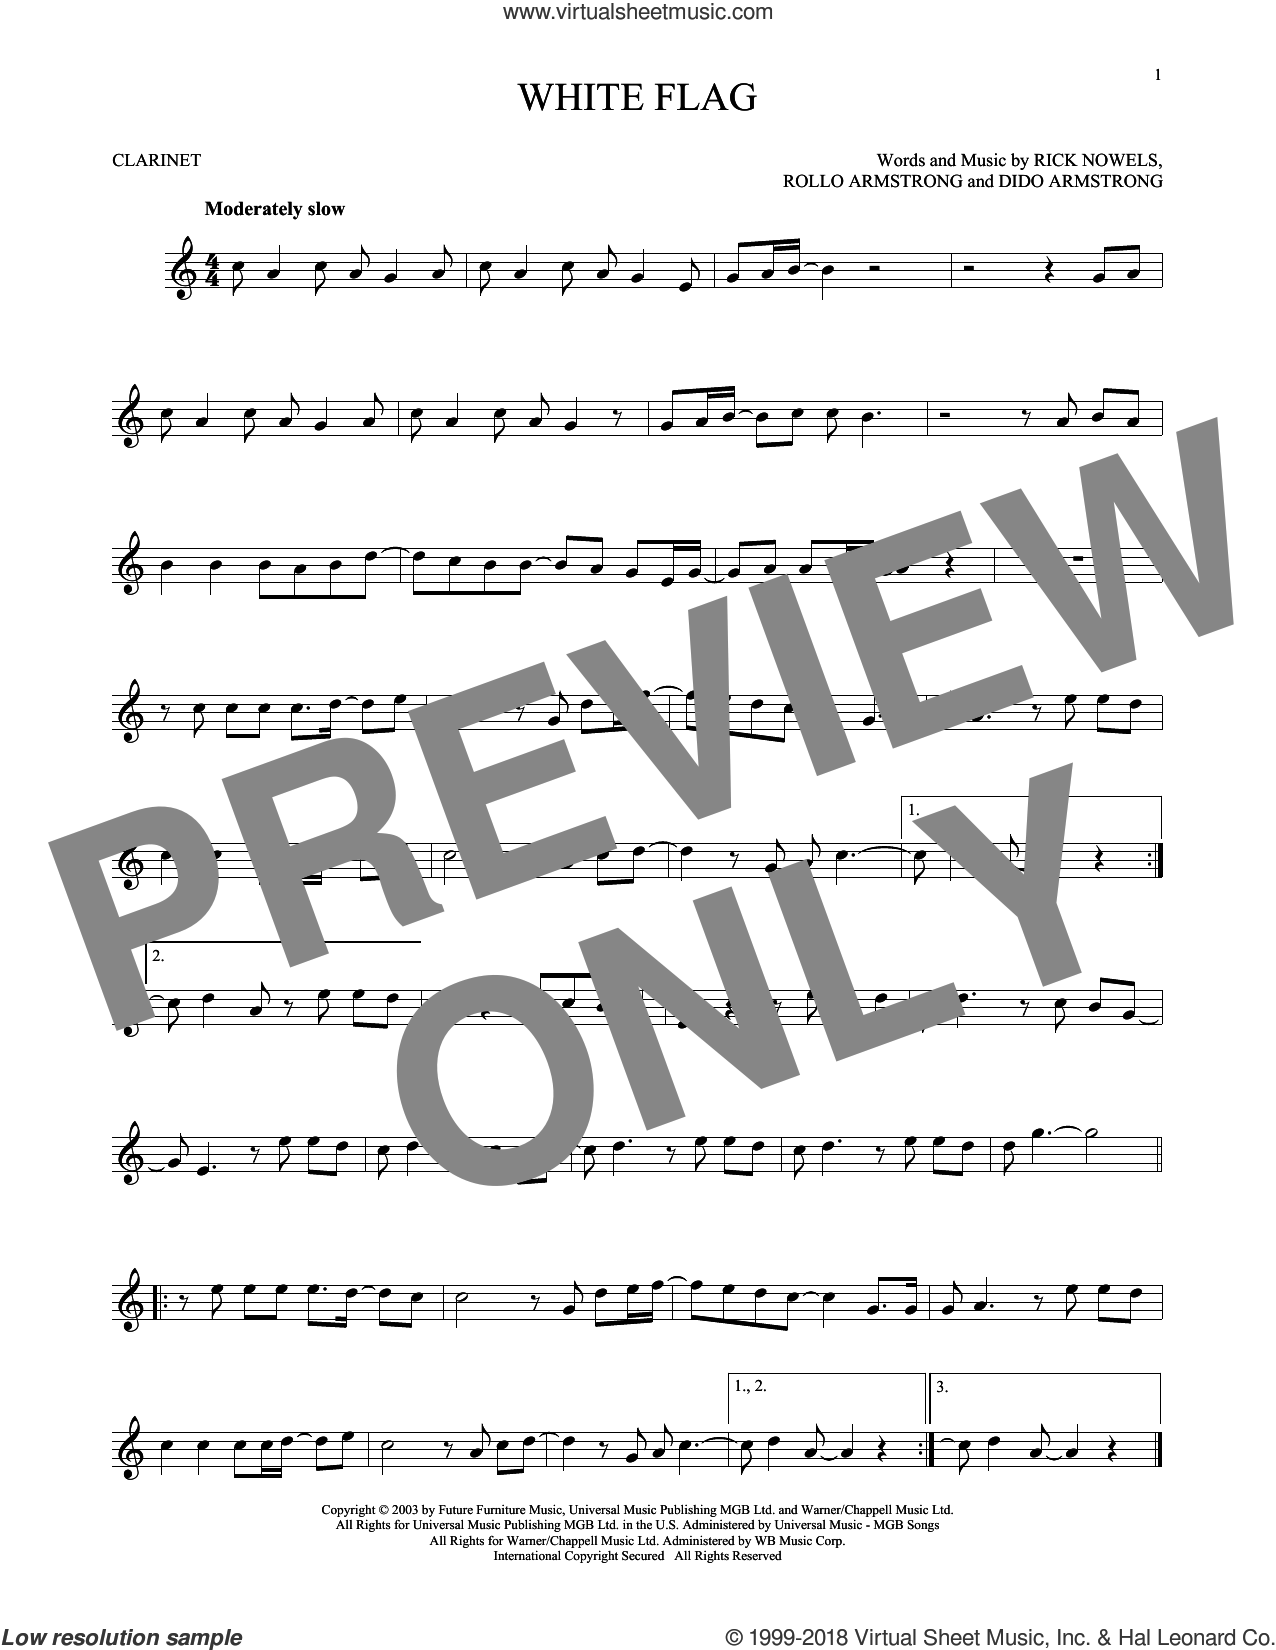 White Flag sheet music for clarinet solo by Dido Armstrong, Rick Nowels and Rollo Armstrong, intermediate. Score Image Preview.